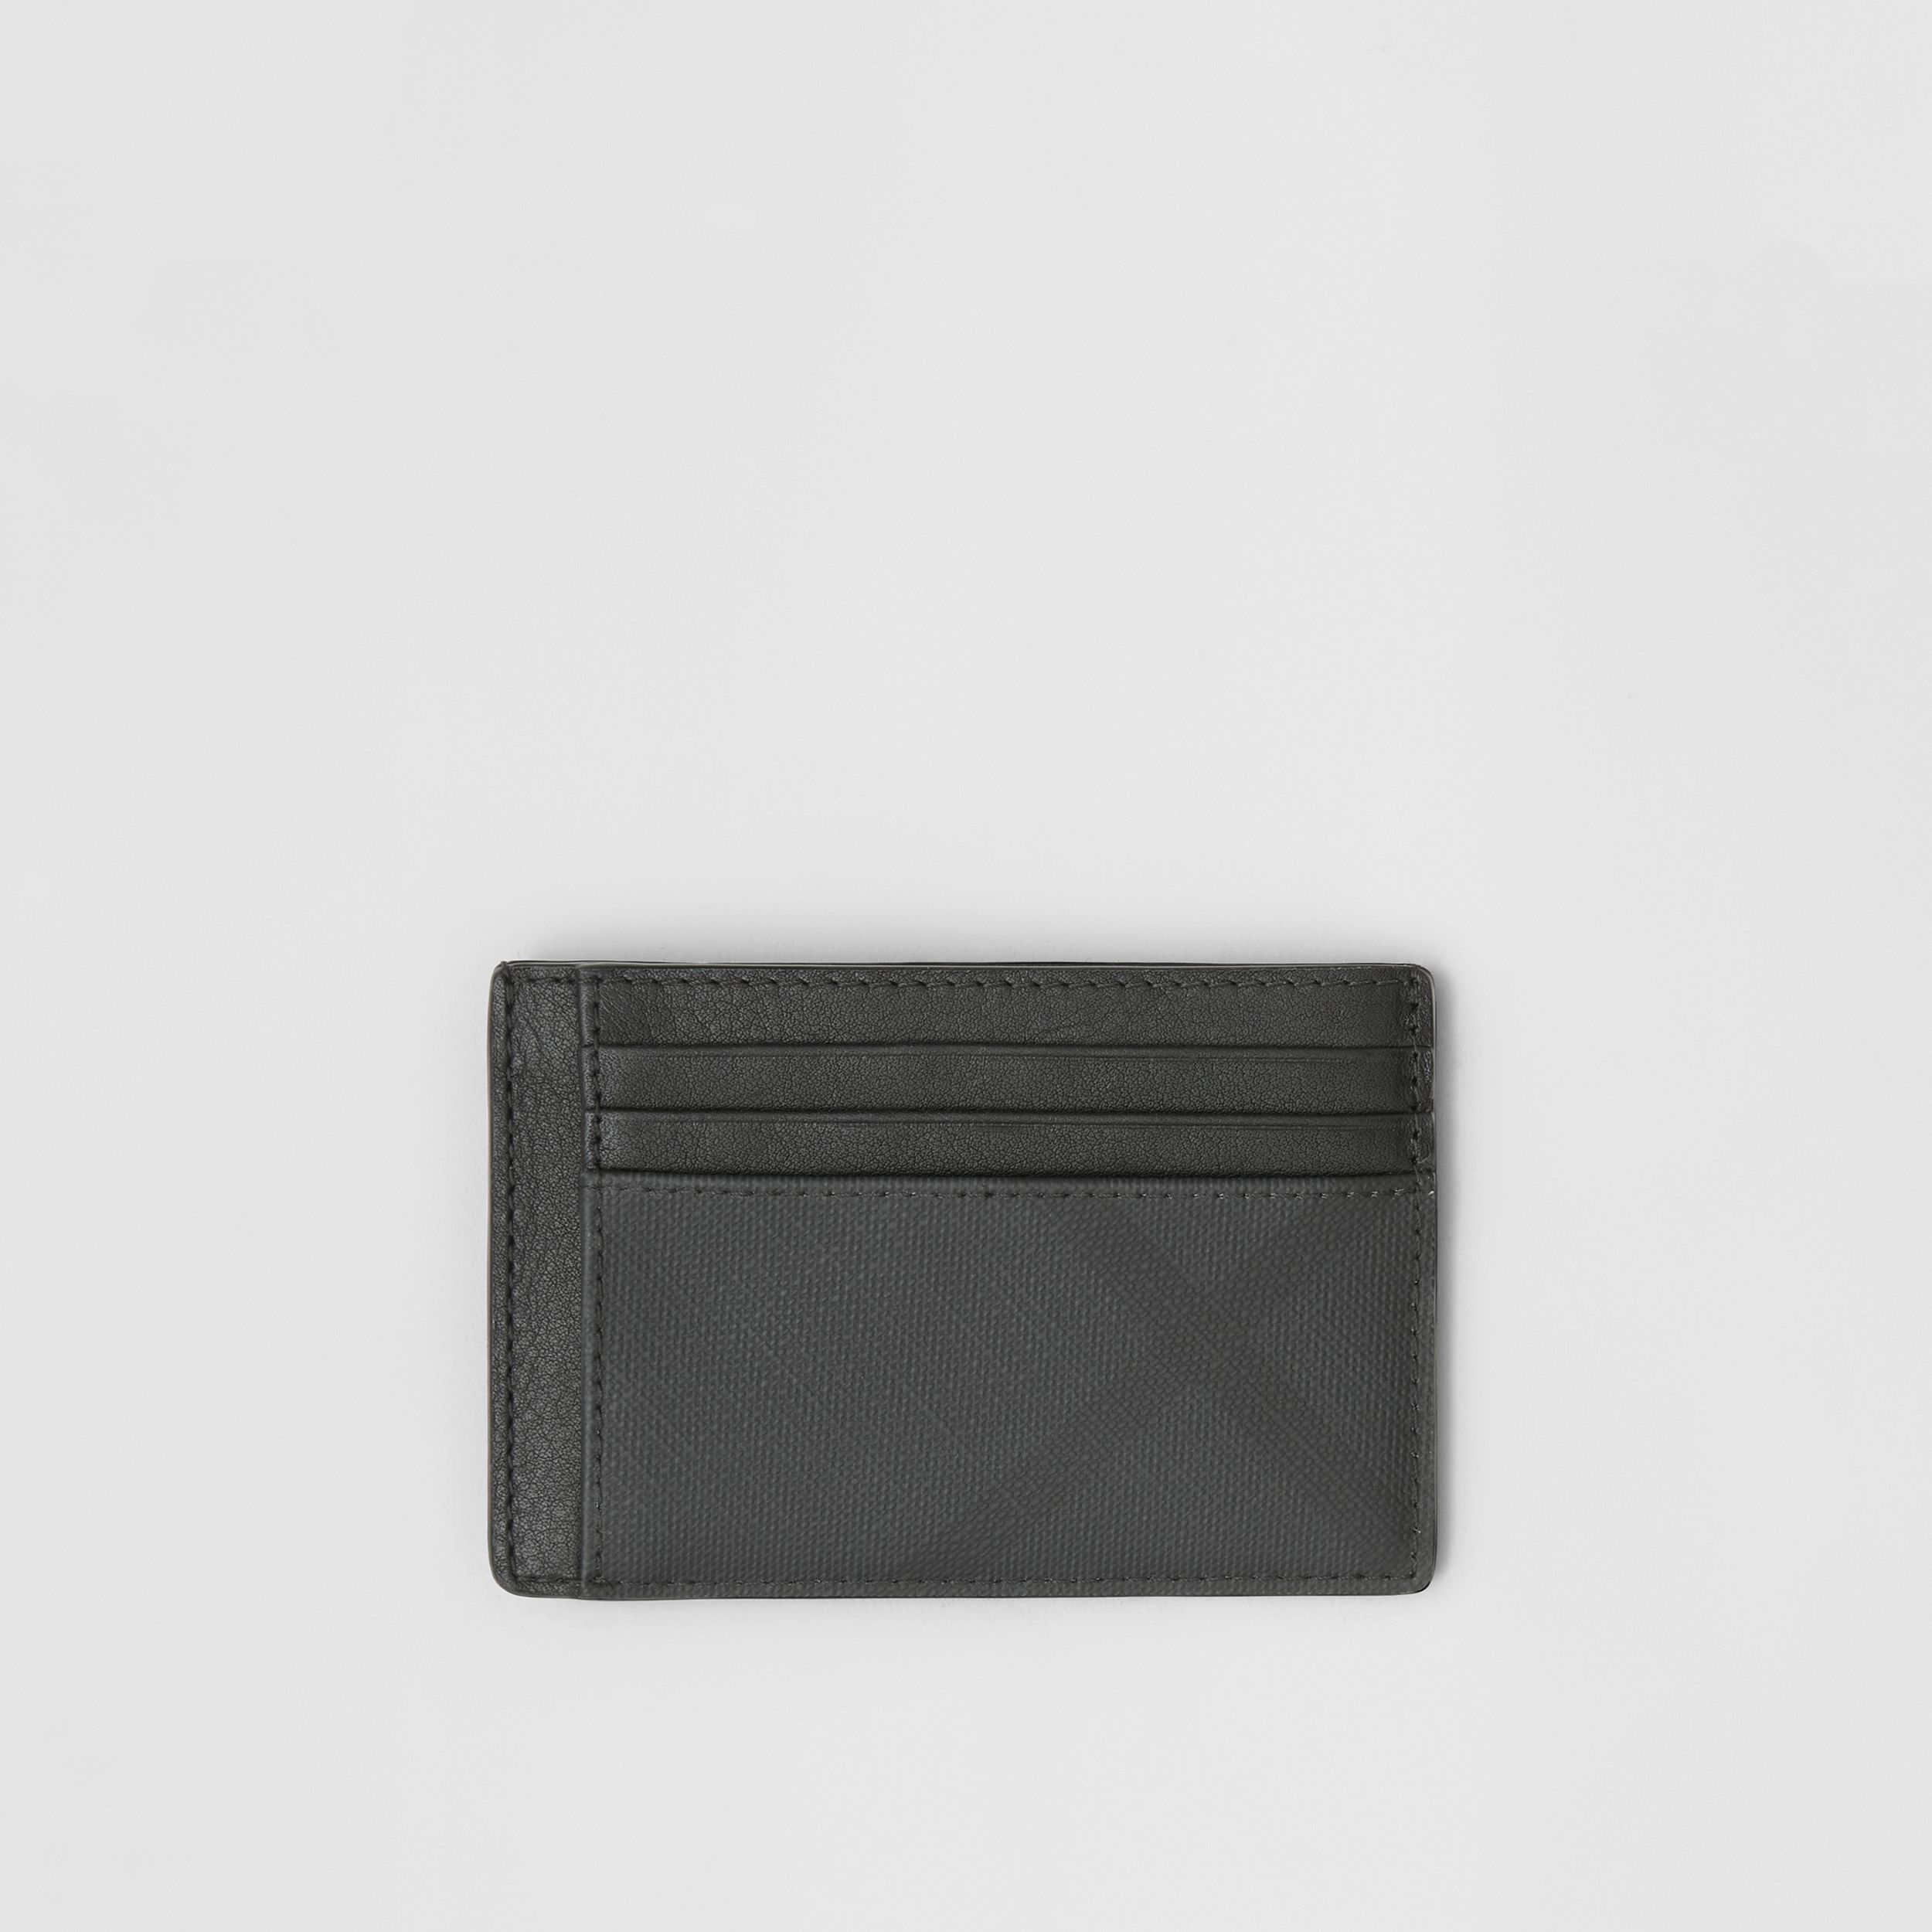 London Check and Leather Money Clip Card Case in Dark Charcoal - Men | Burberry Hong Kong S.A.R. - 1